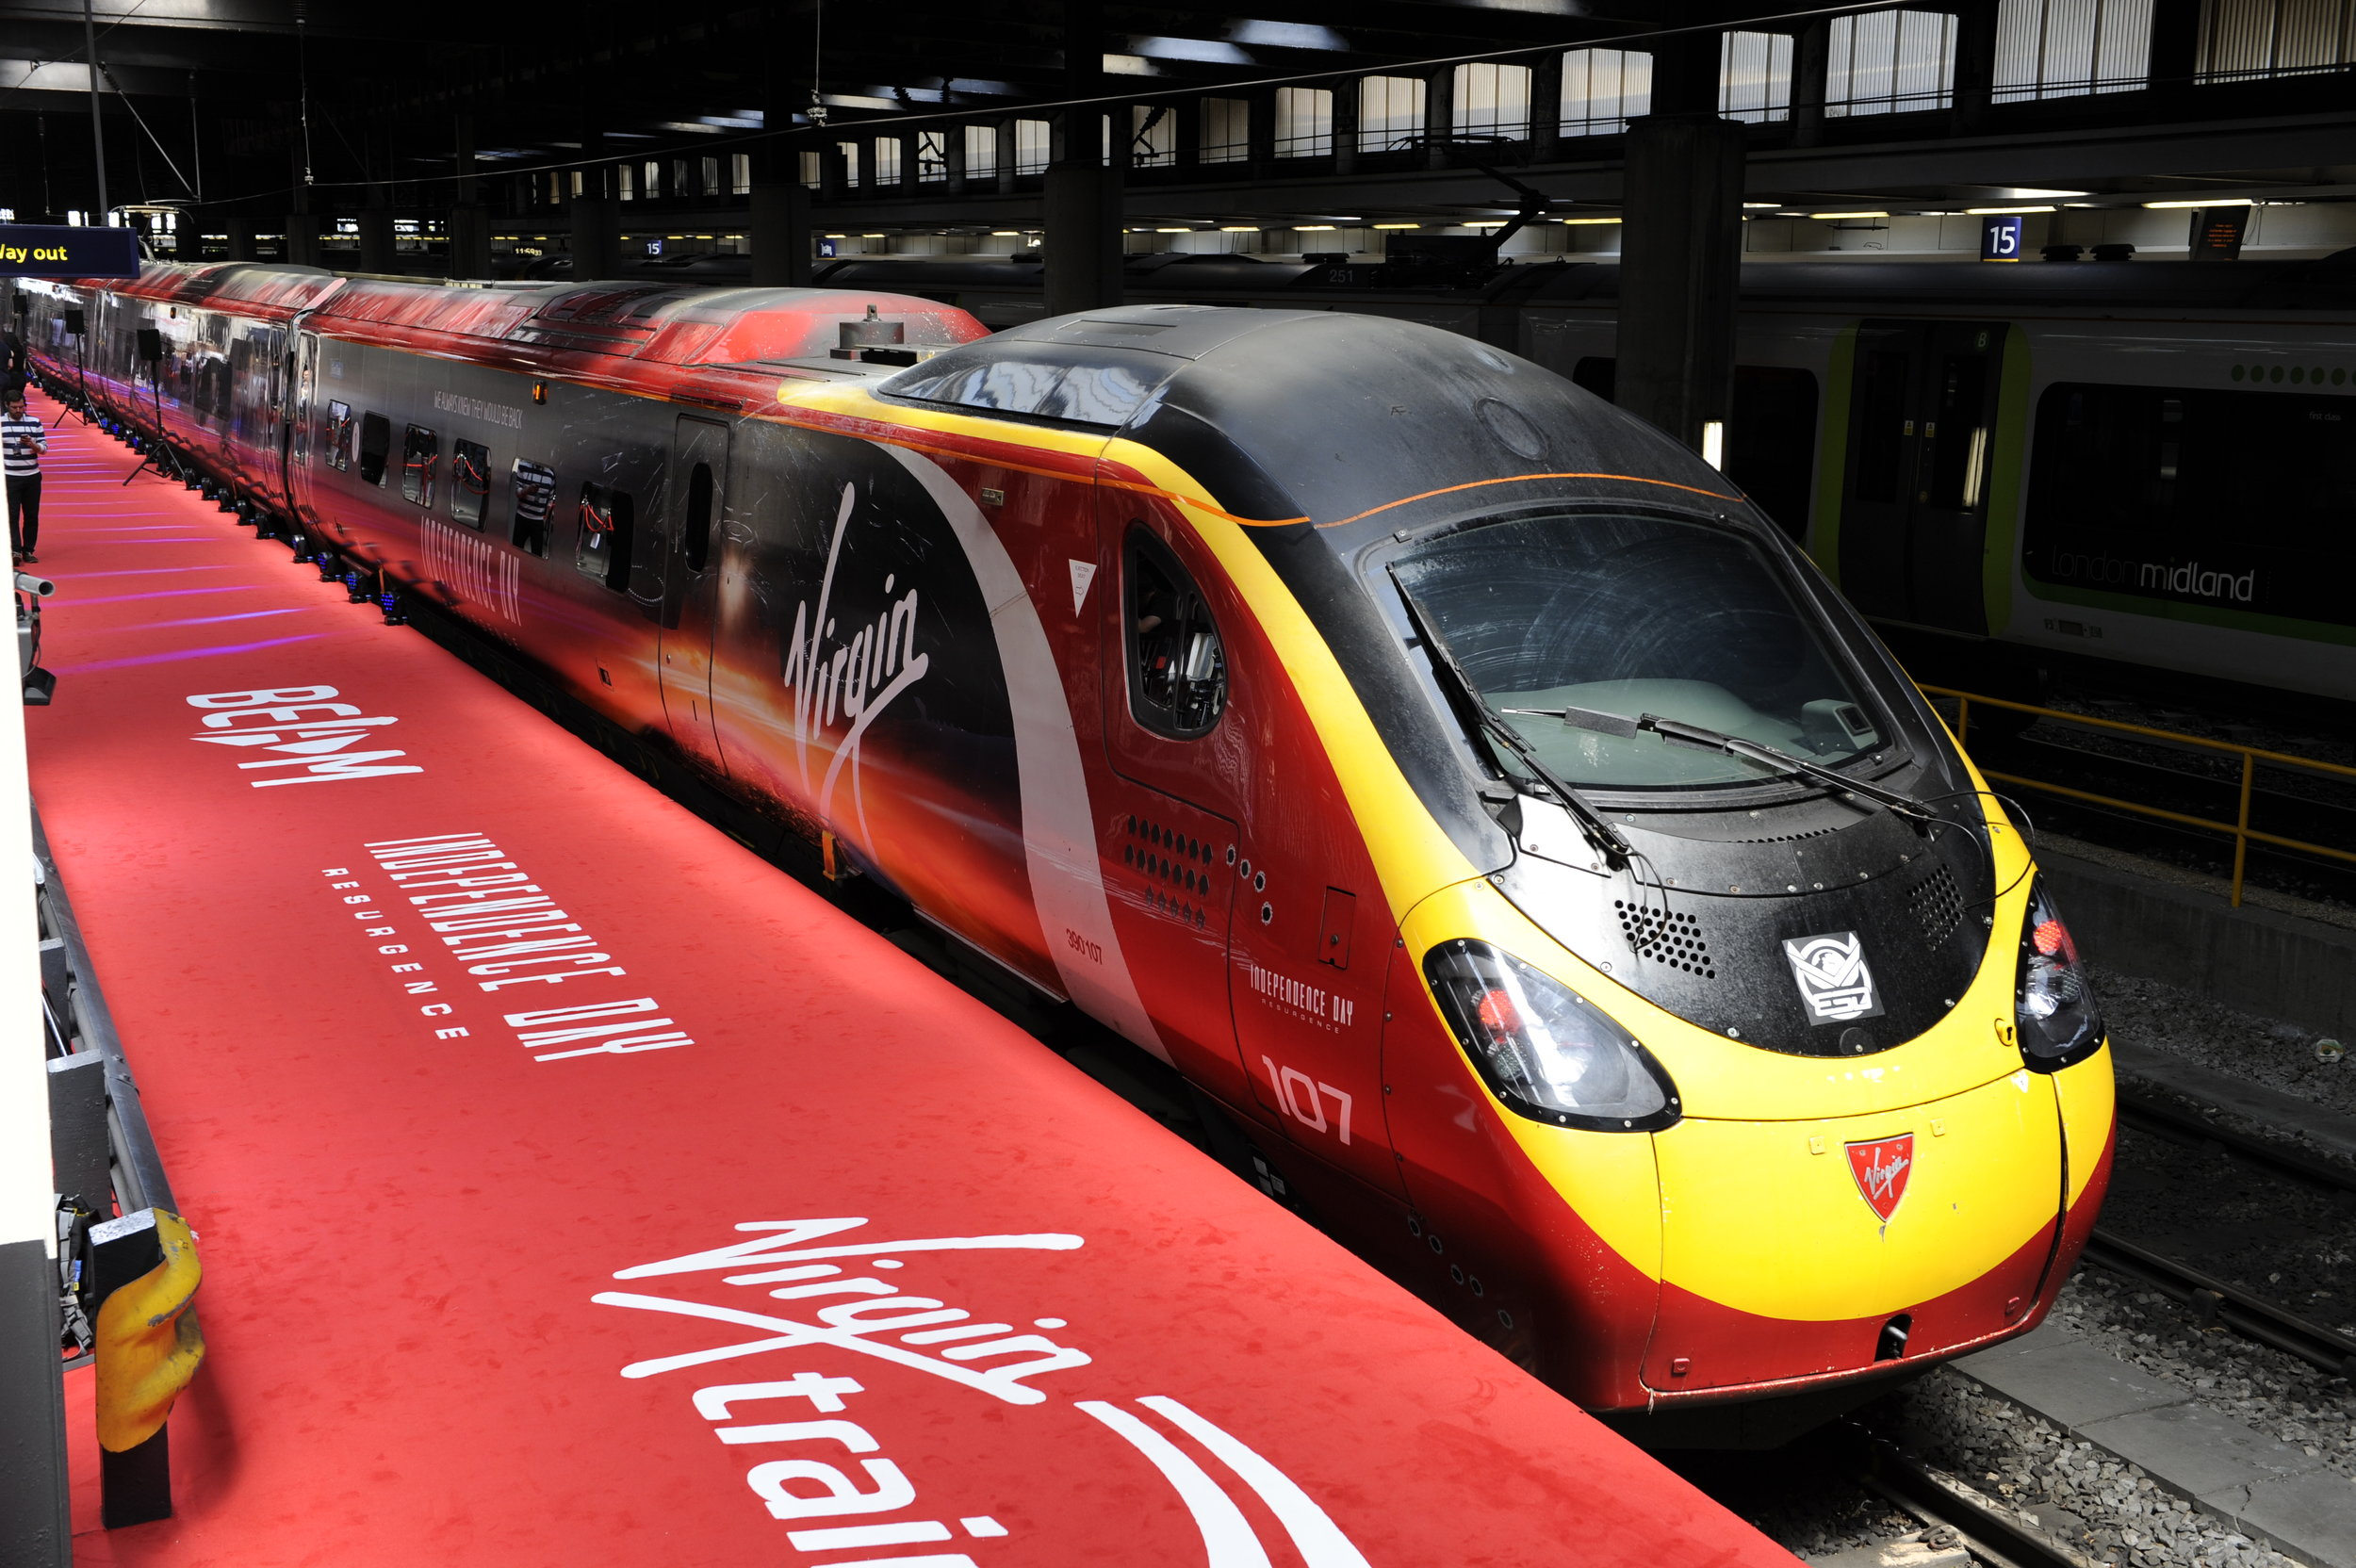 Content strategy and article production for launch of new Virgin Trains blog -